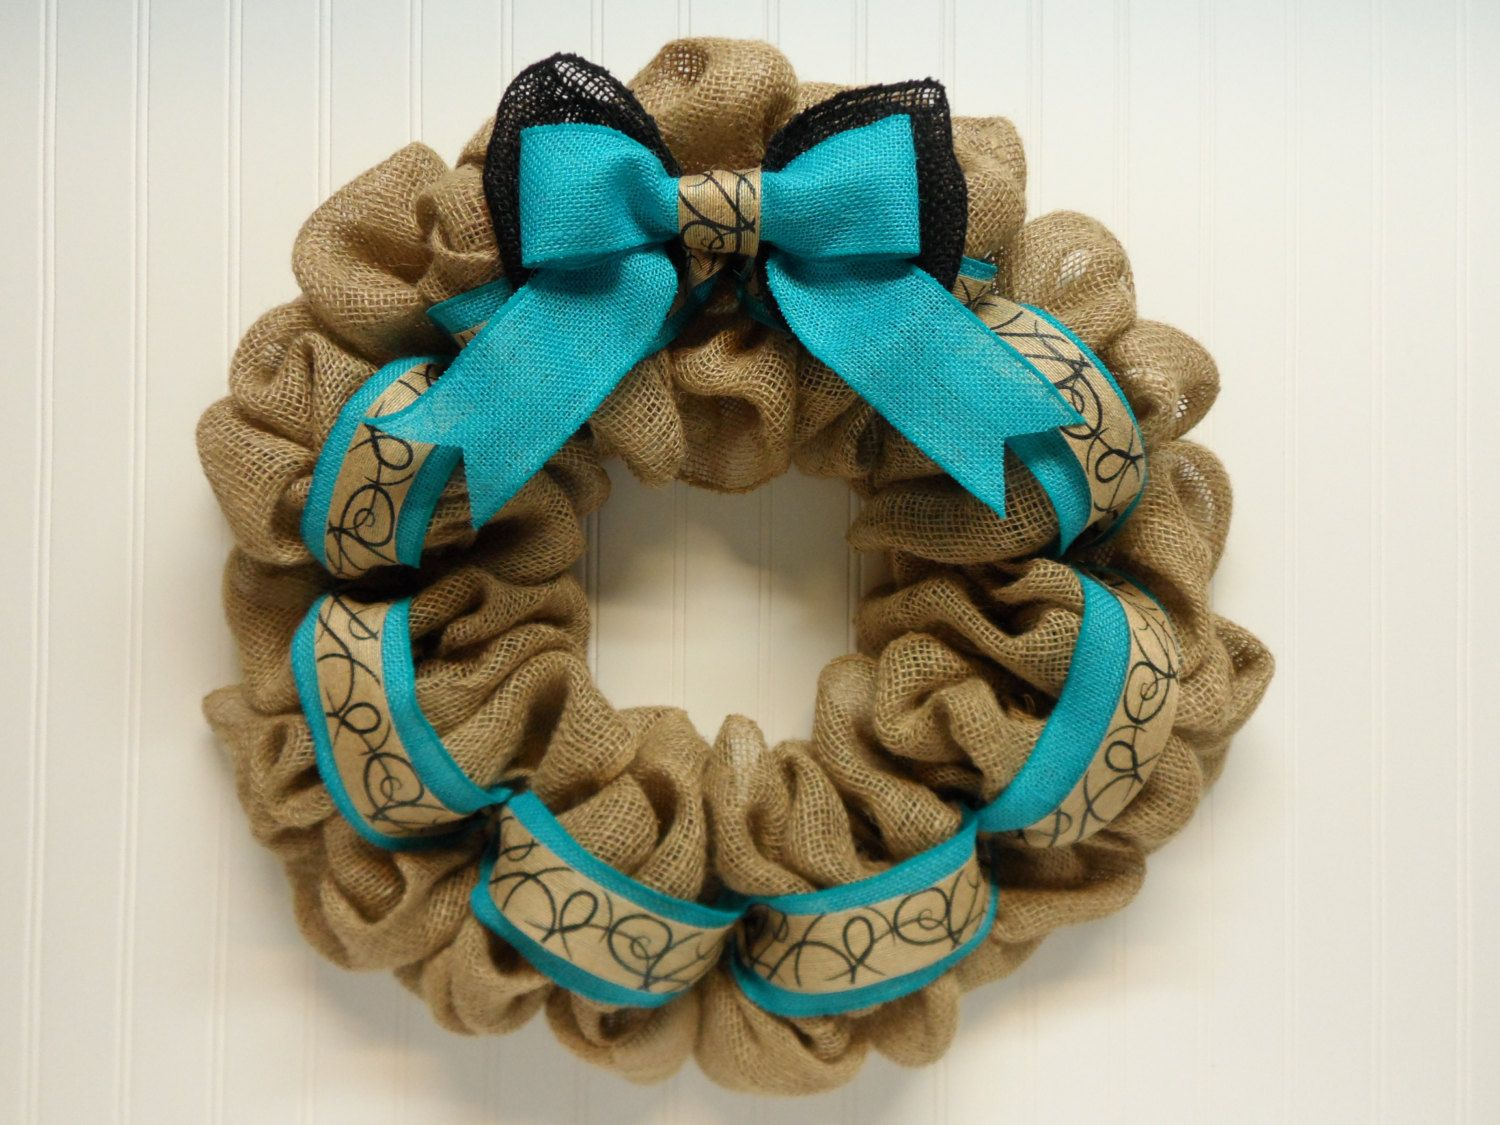 Burlap Wreath, Natural Burlap, Country Burlap Wreath, Front Door Wreath, Handmade Burlap Bow, Aqua by BeautifulHomeAccents on Etsy